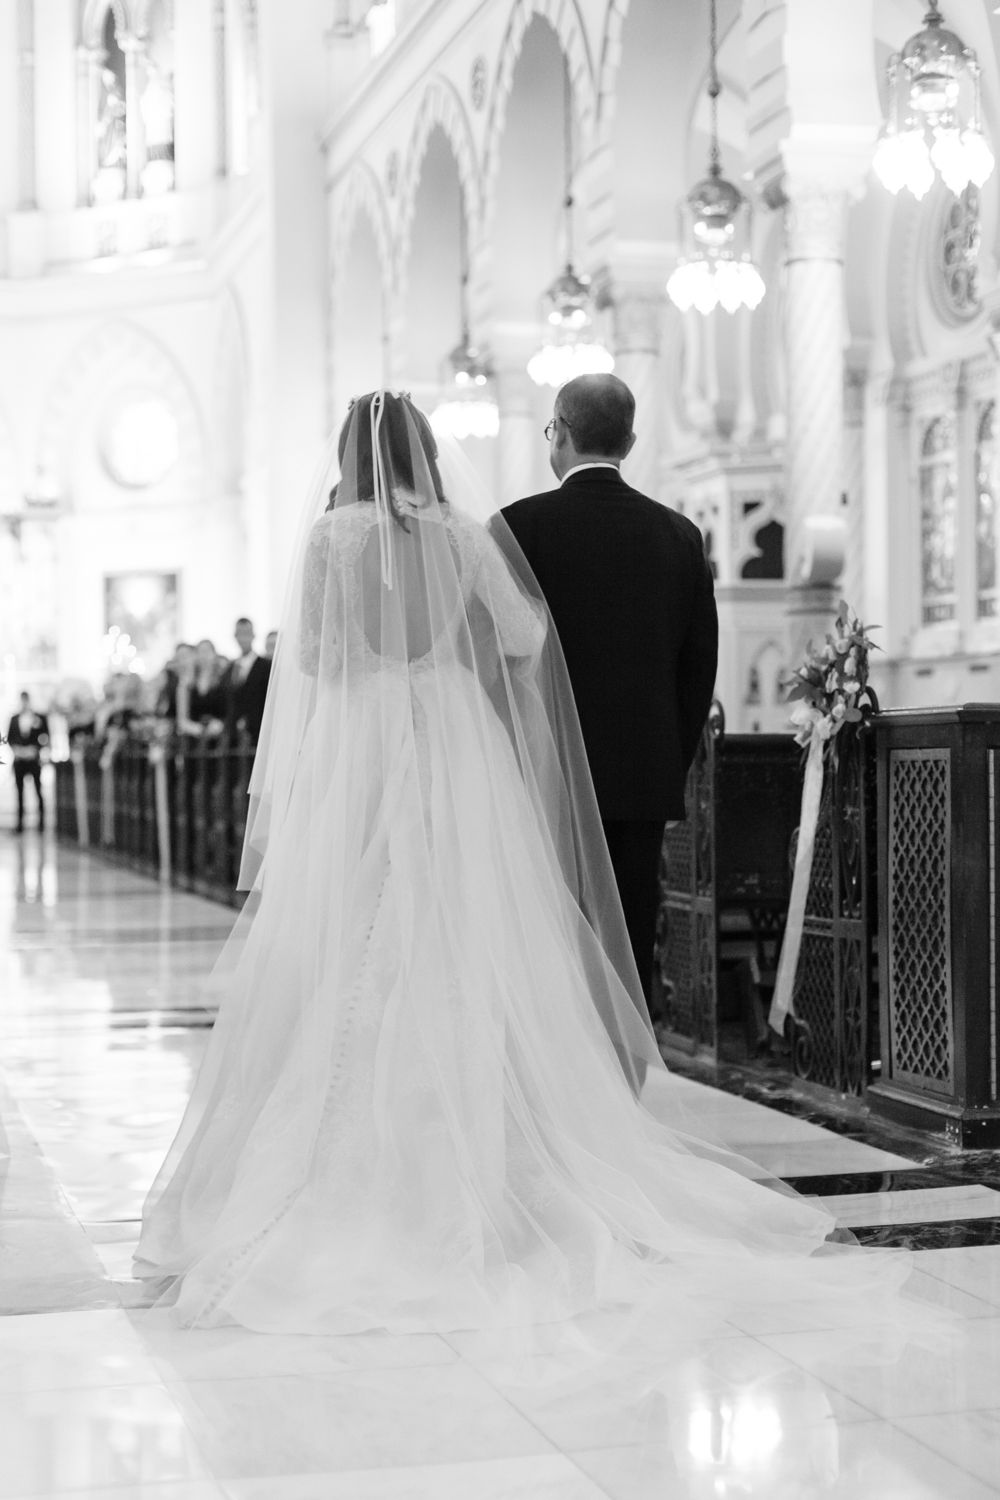 <p>Bride and groom down aisle</p><br><br>